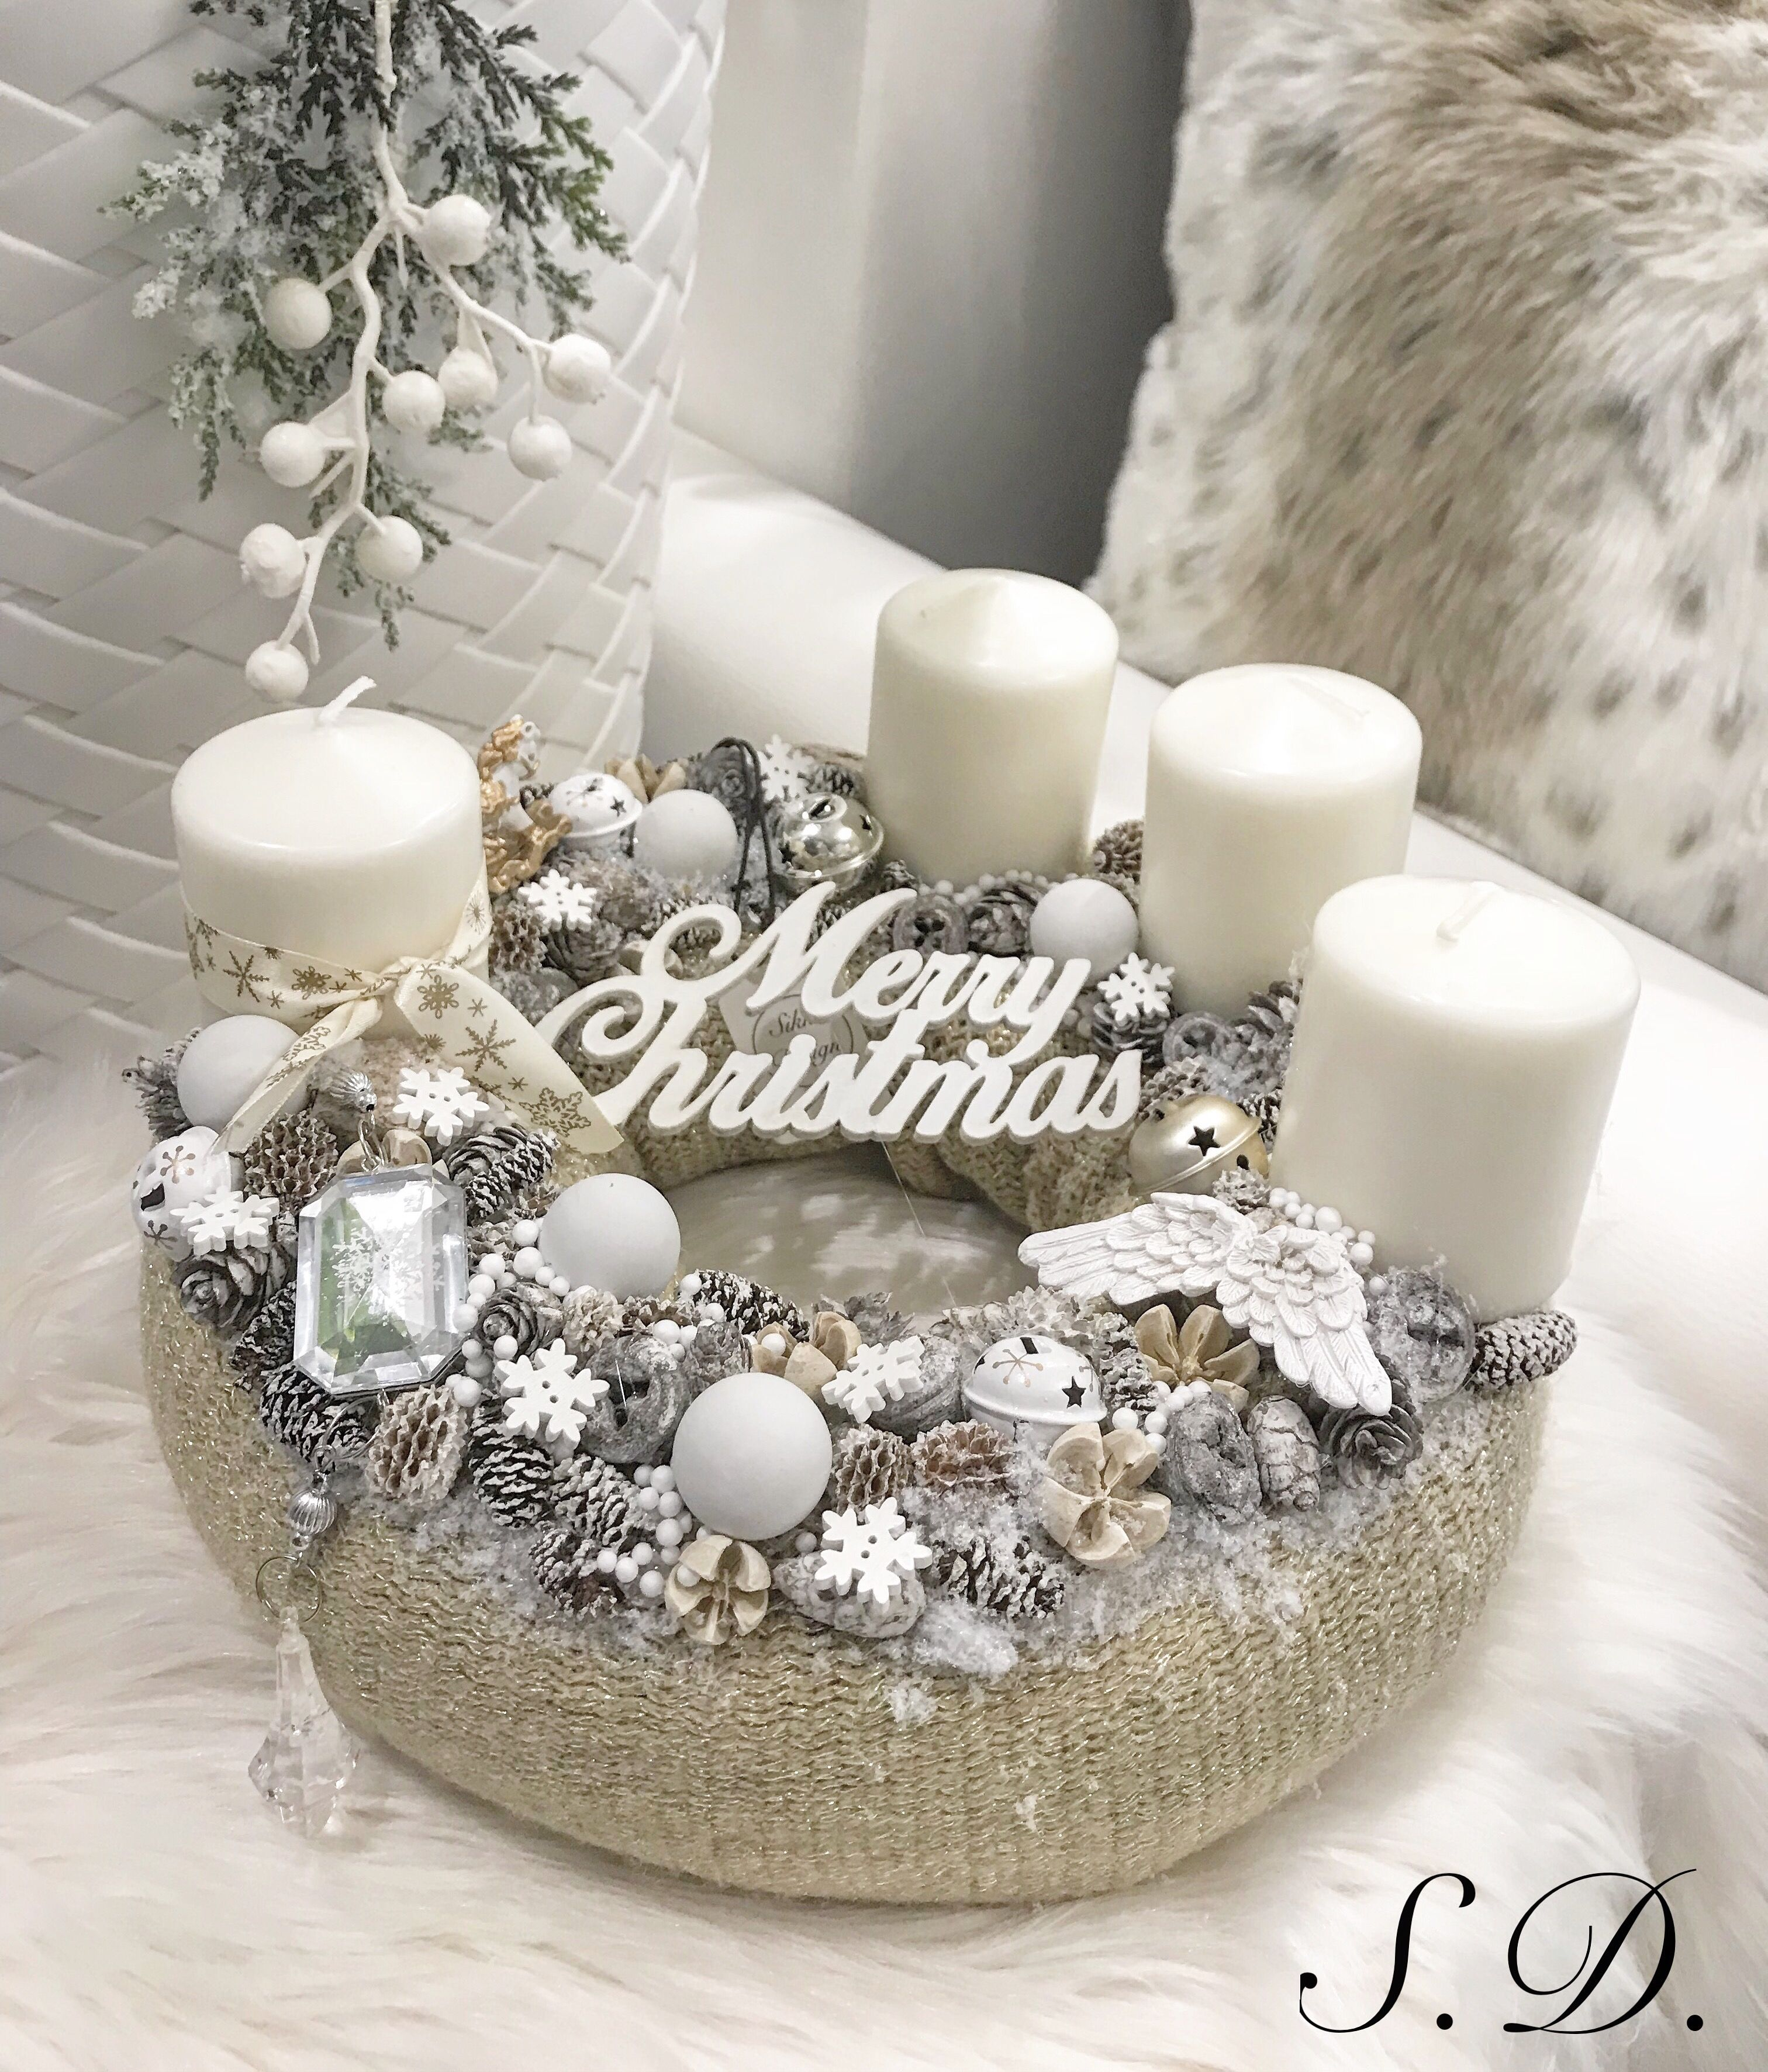 Pin By Ingeborg Risco On Christmas Time - Pinterest -